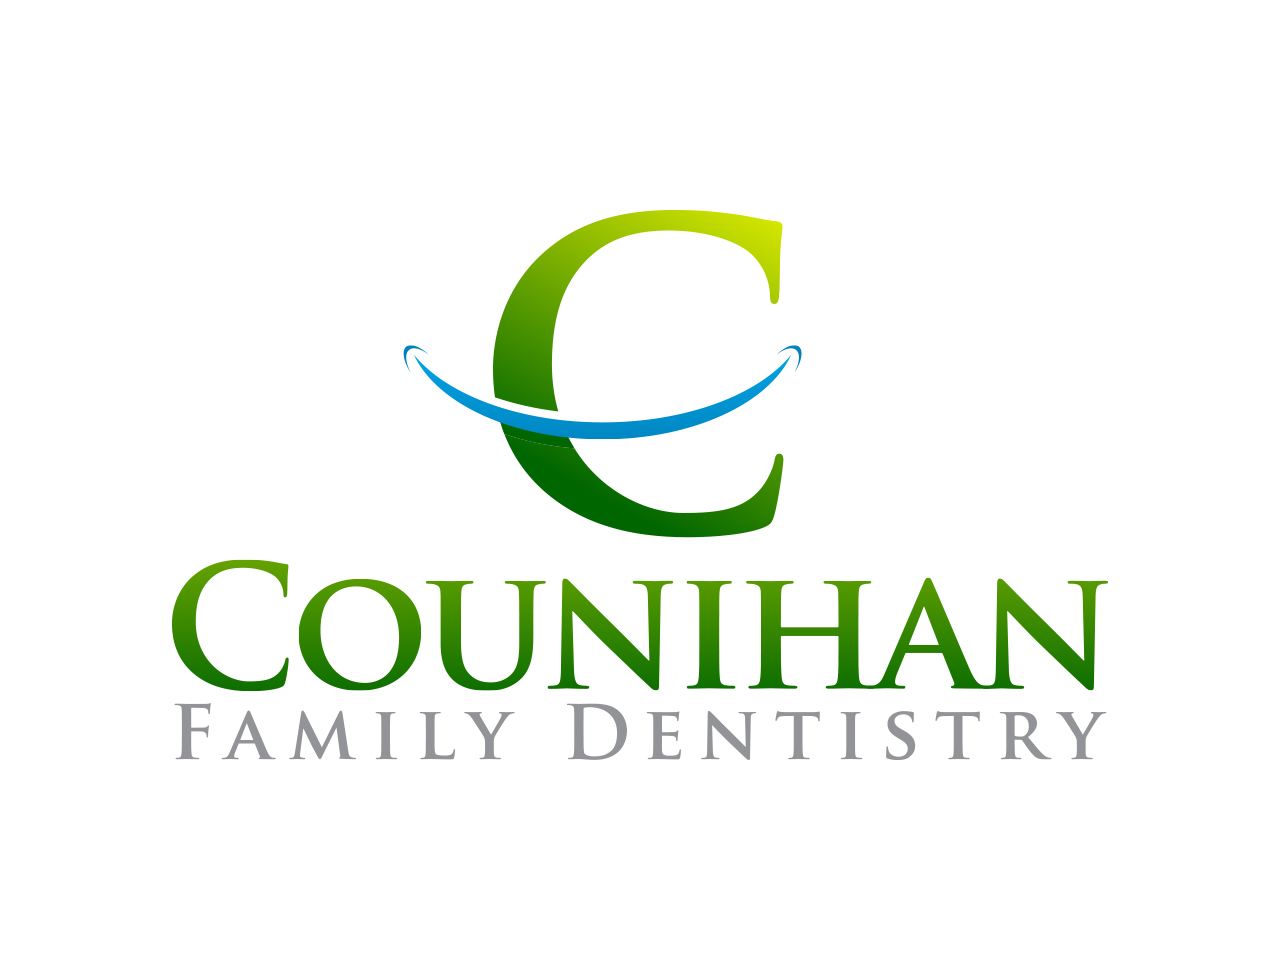 Counihan Family Dentistry.jpg